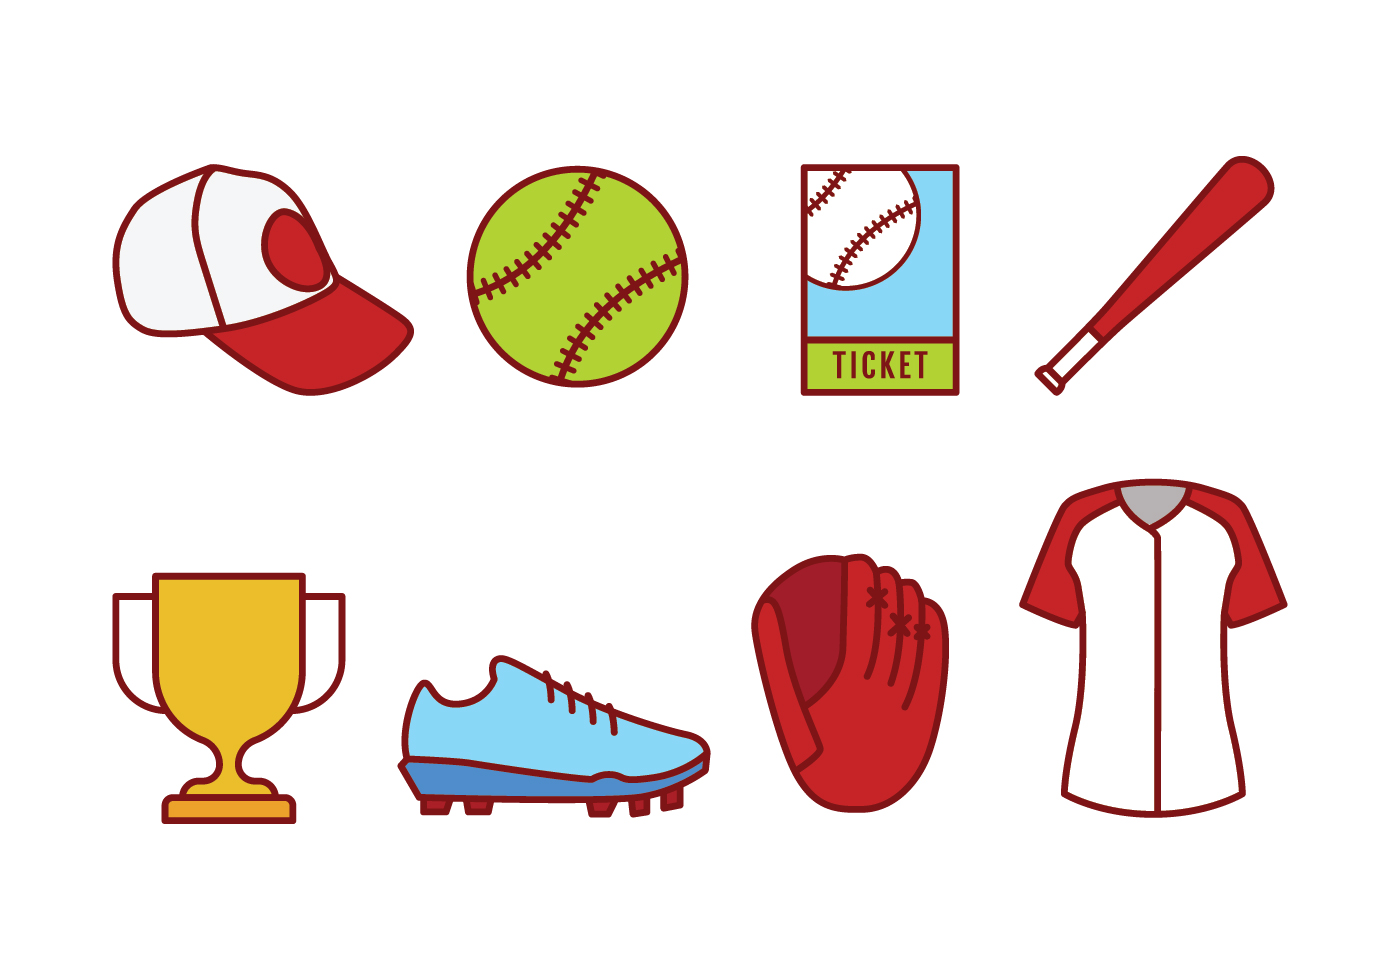 Softball icon set download free vector art stock graphics images for Softball vector free download